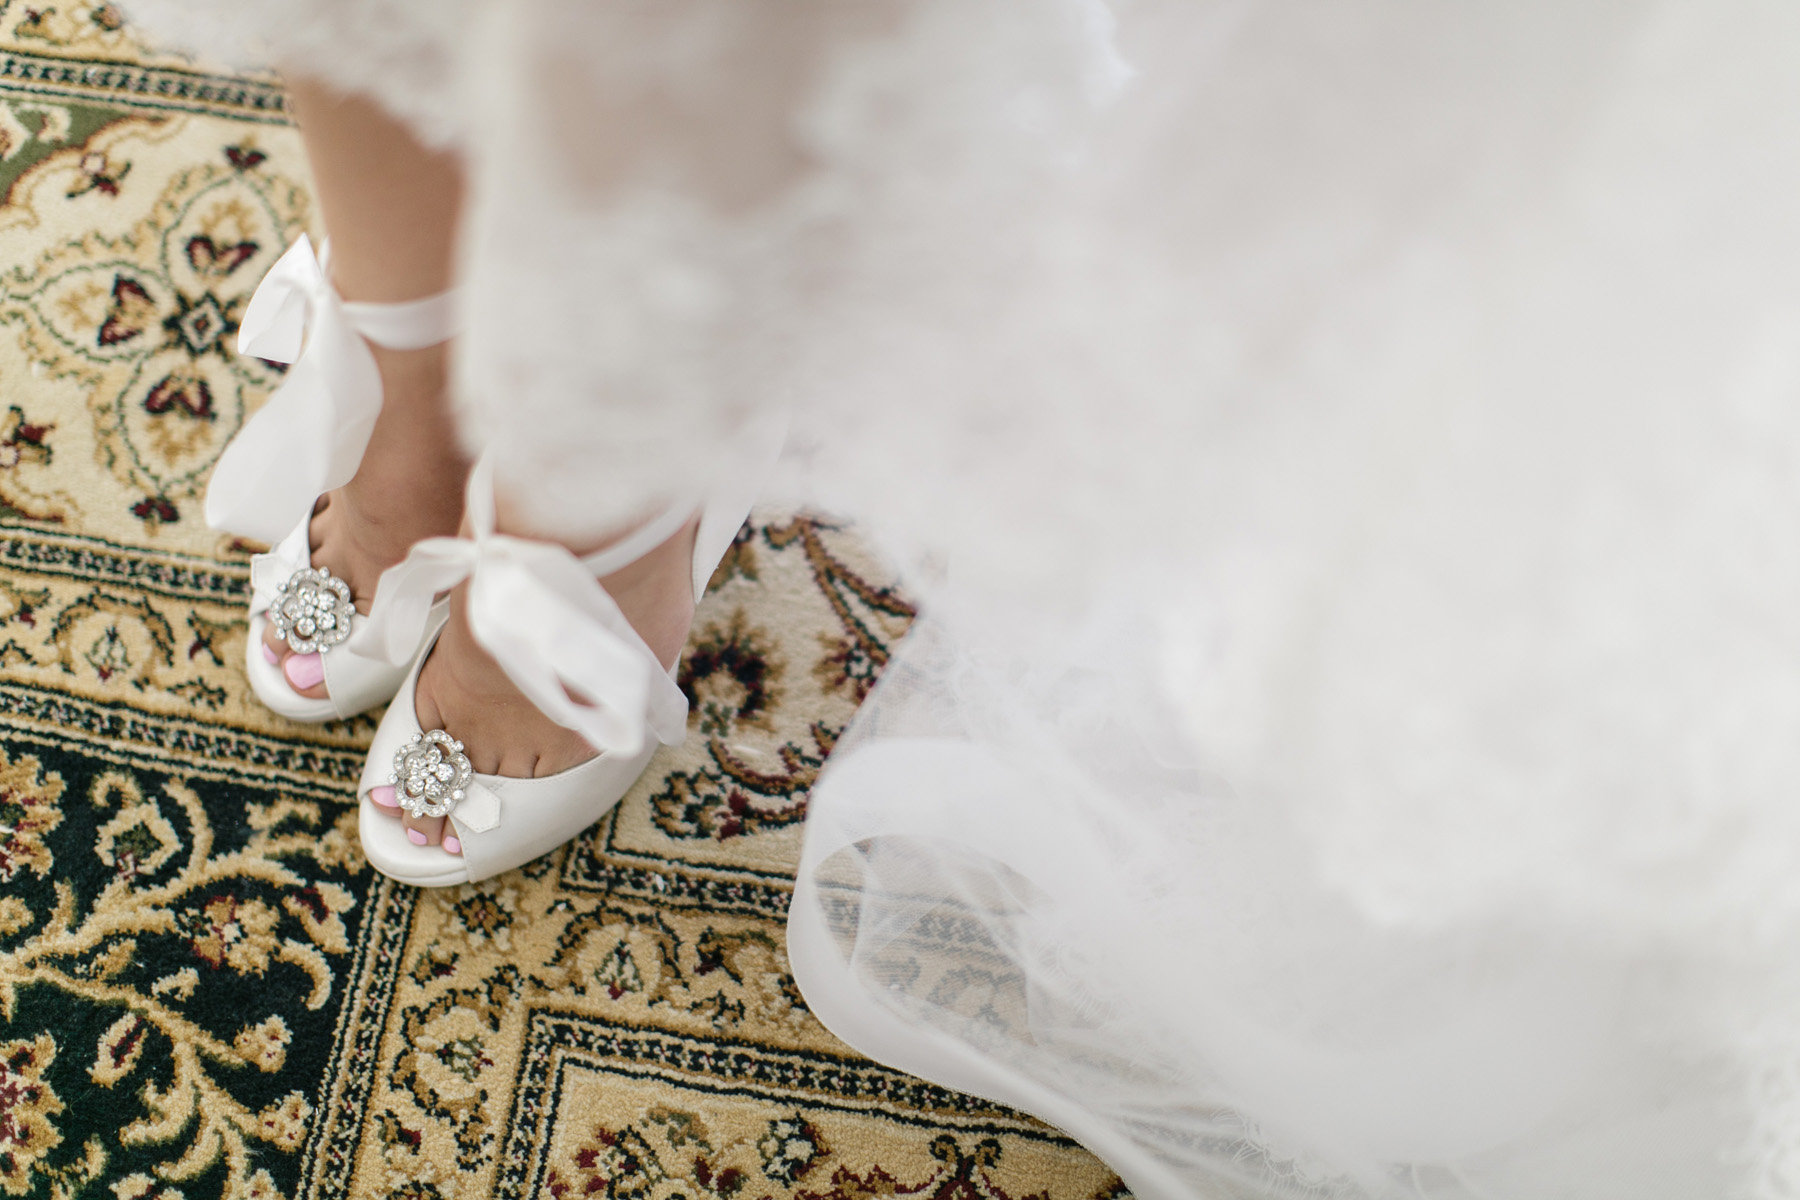 View More: https://joeewong.pass.us/christina_demetri_wedding